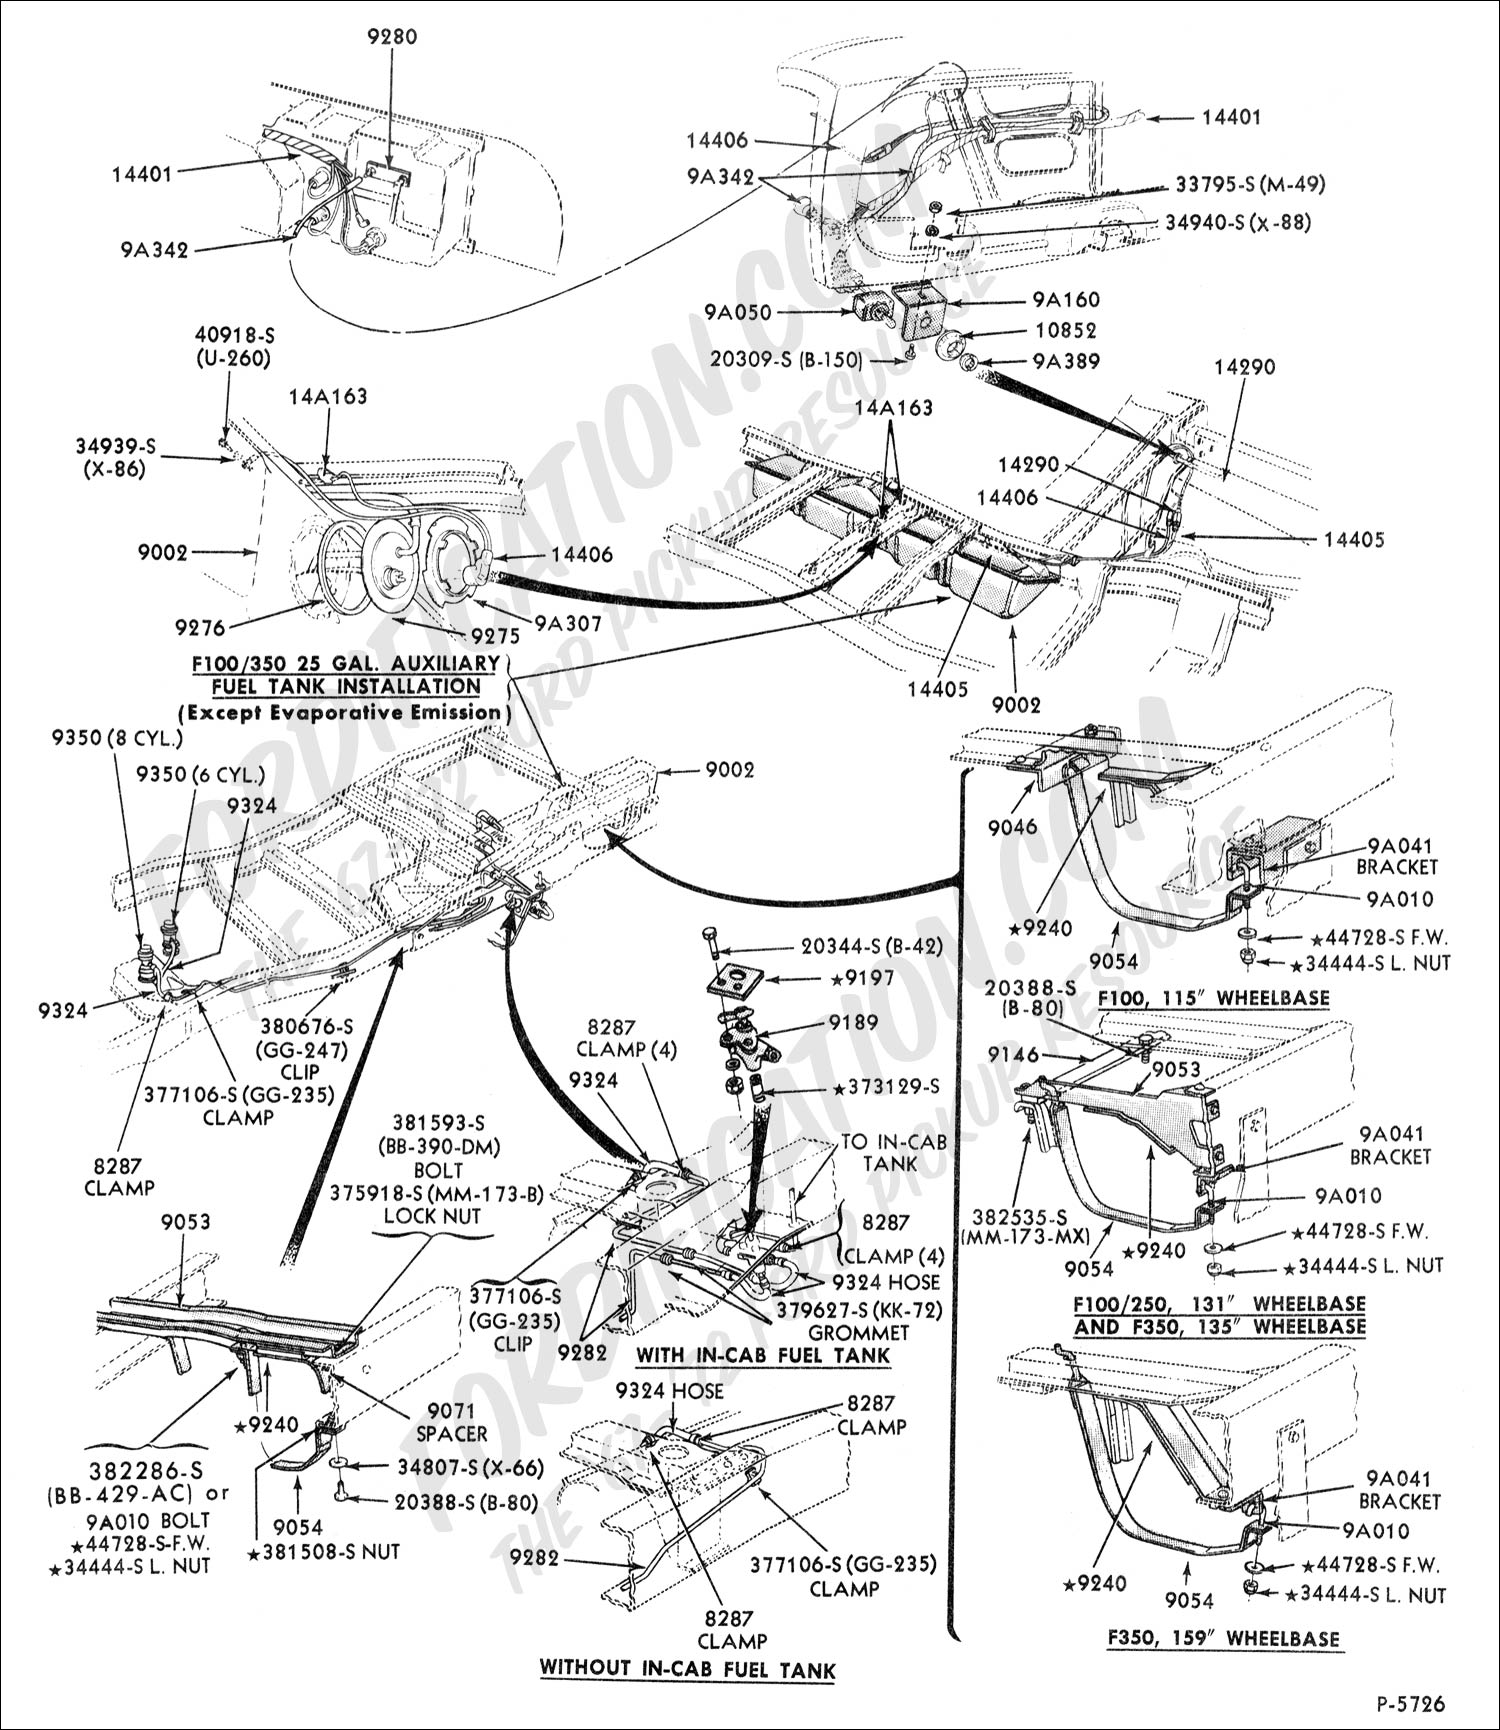 72 ford f100 wiring diagram 1990 jeep wrangler stereo truck part numbers auxiliary fuel tank